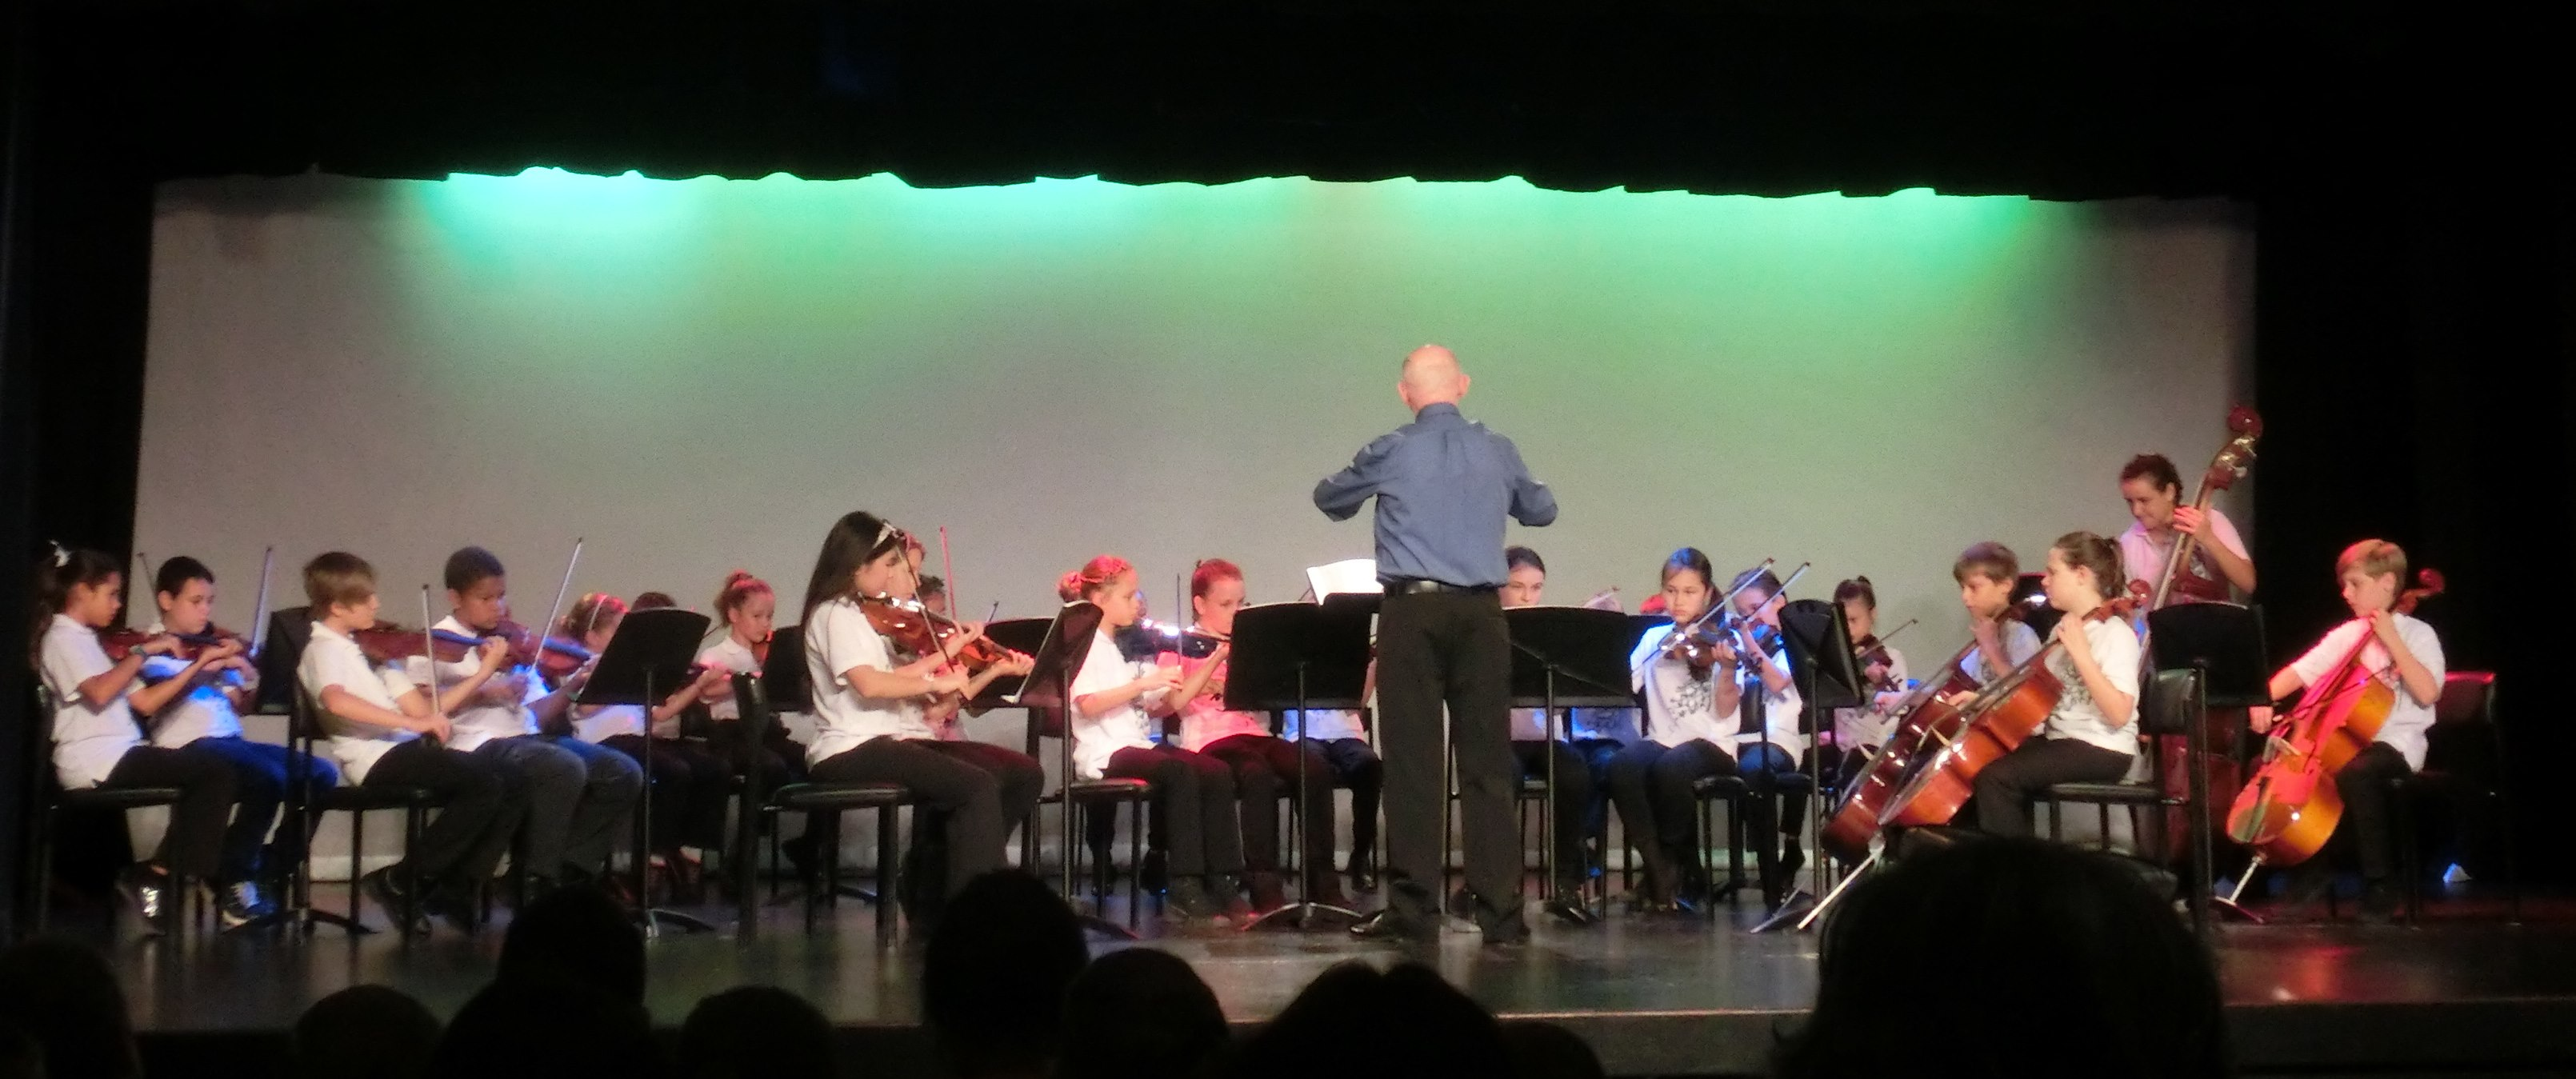 Strings Orchestra